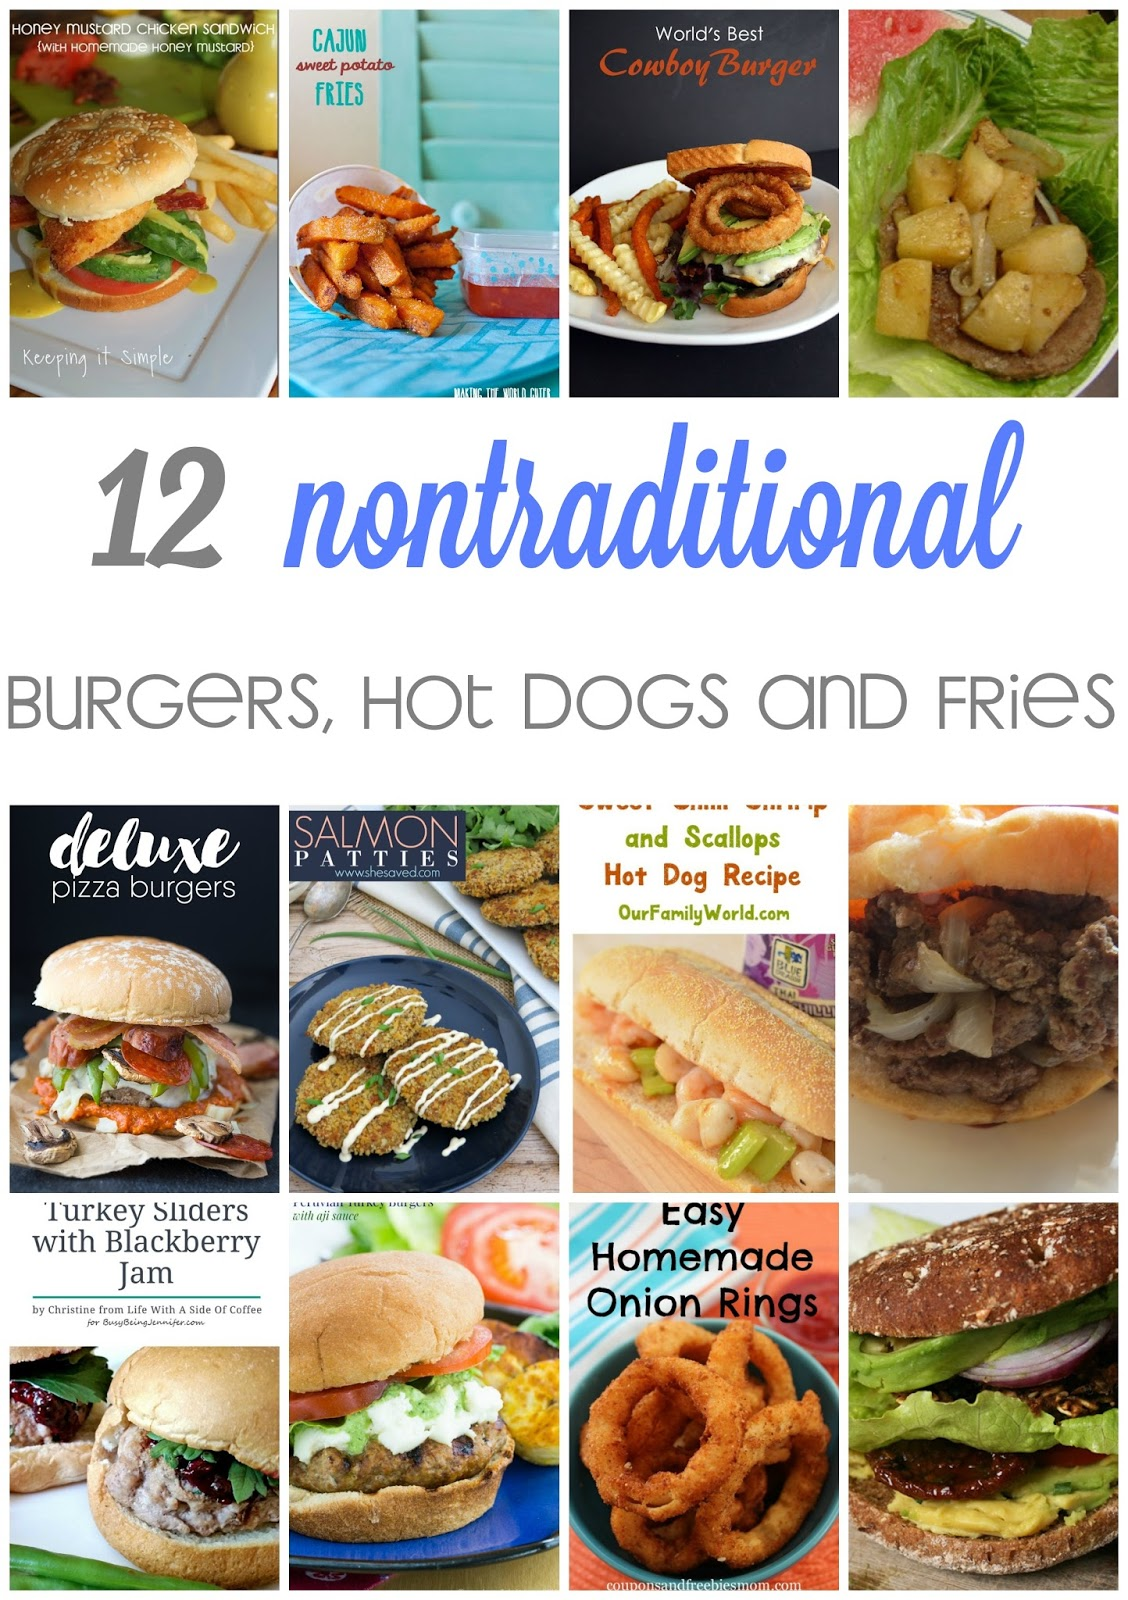 12 nontraditional burgers, fries and hot dogs recipes